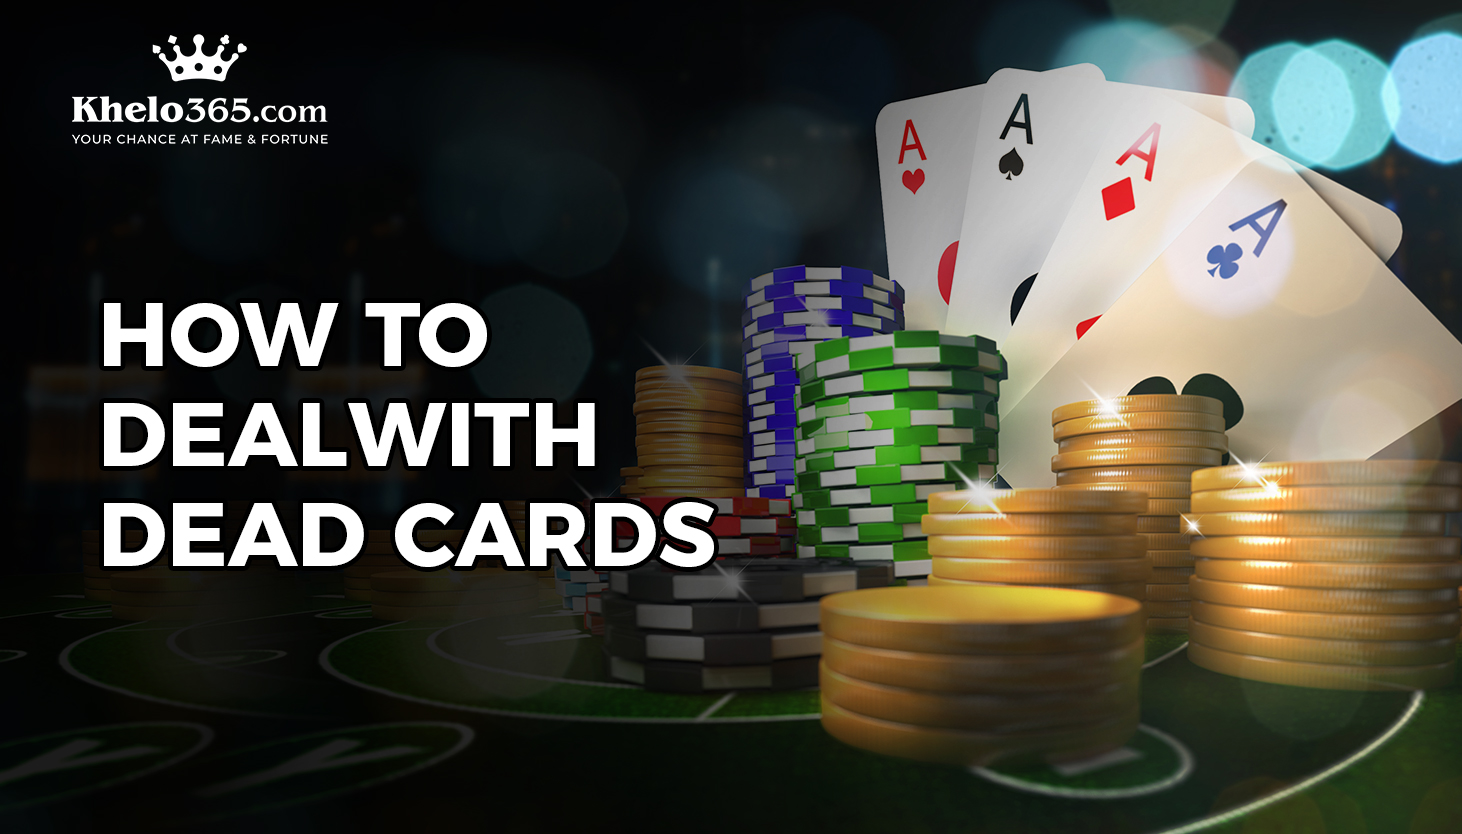 HOW TO DEAL WITH DEAD CARDS IN POKER